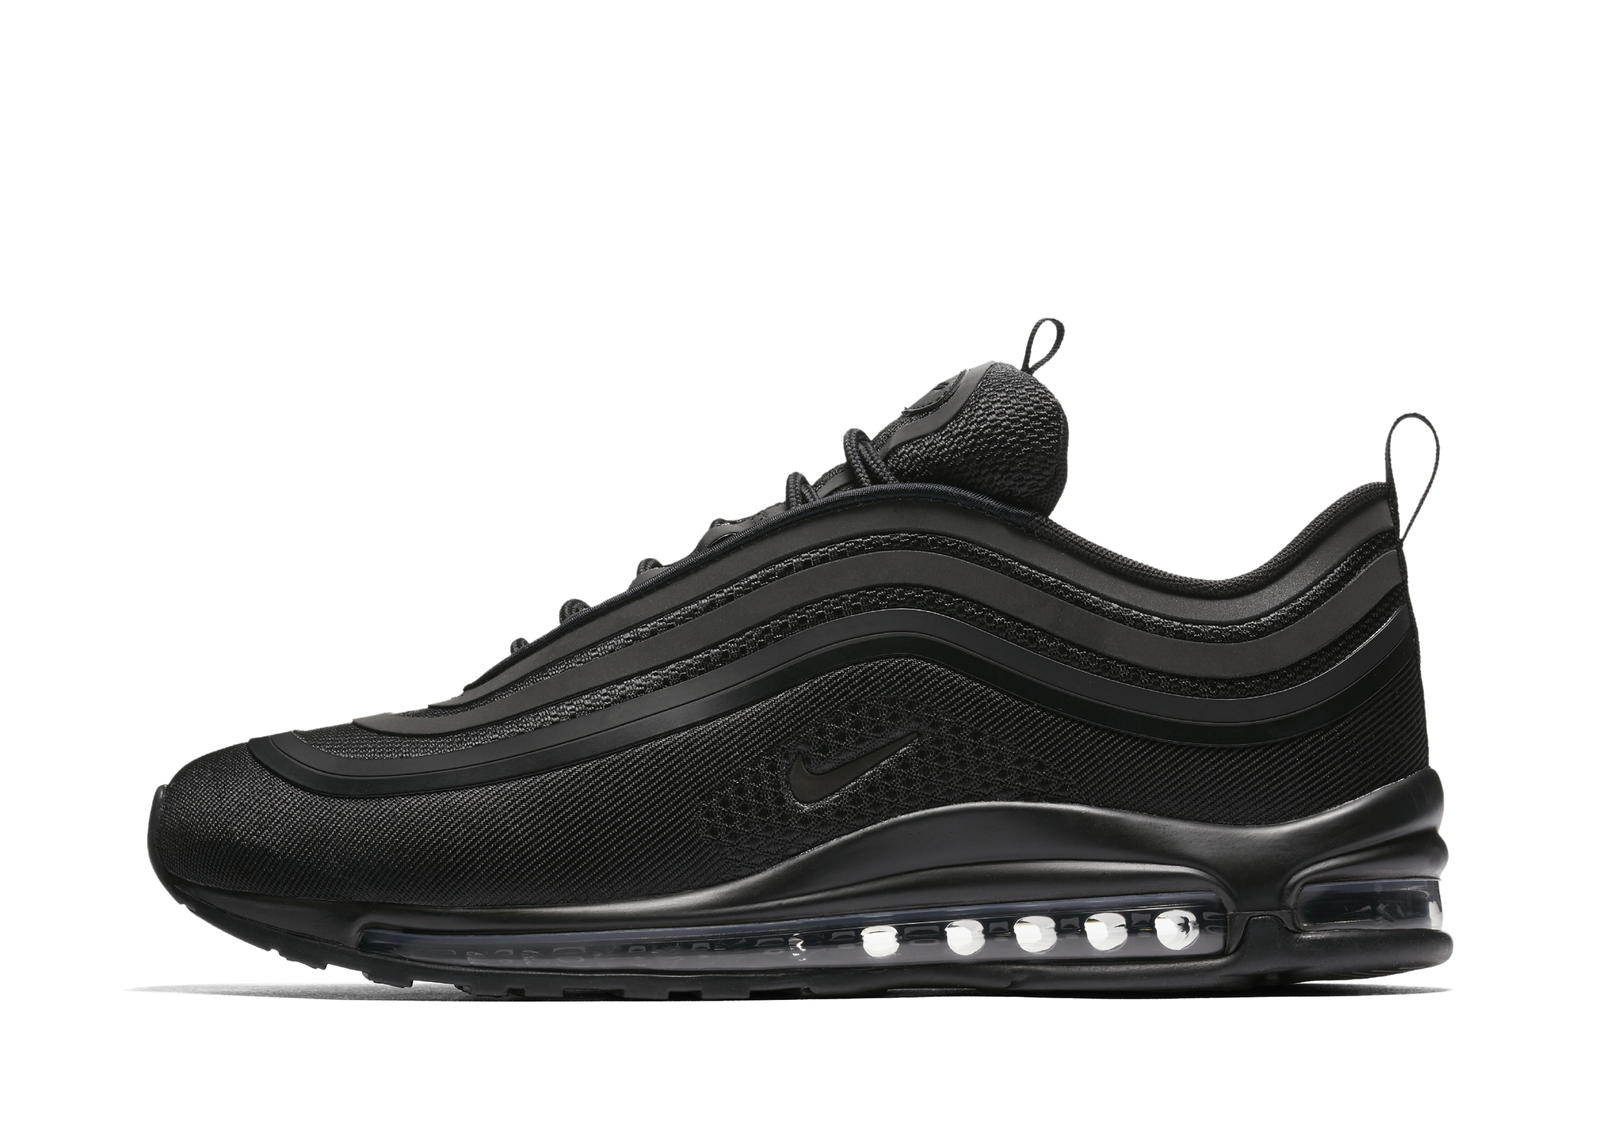 reputable site 487af 20a08 nike air max 97 millenium